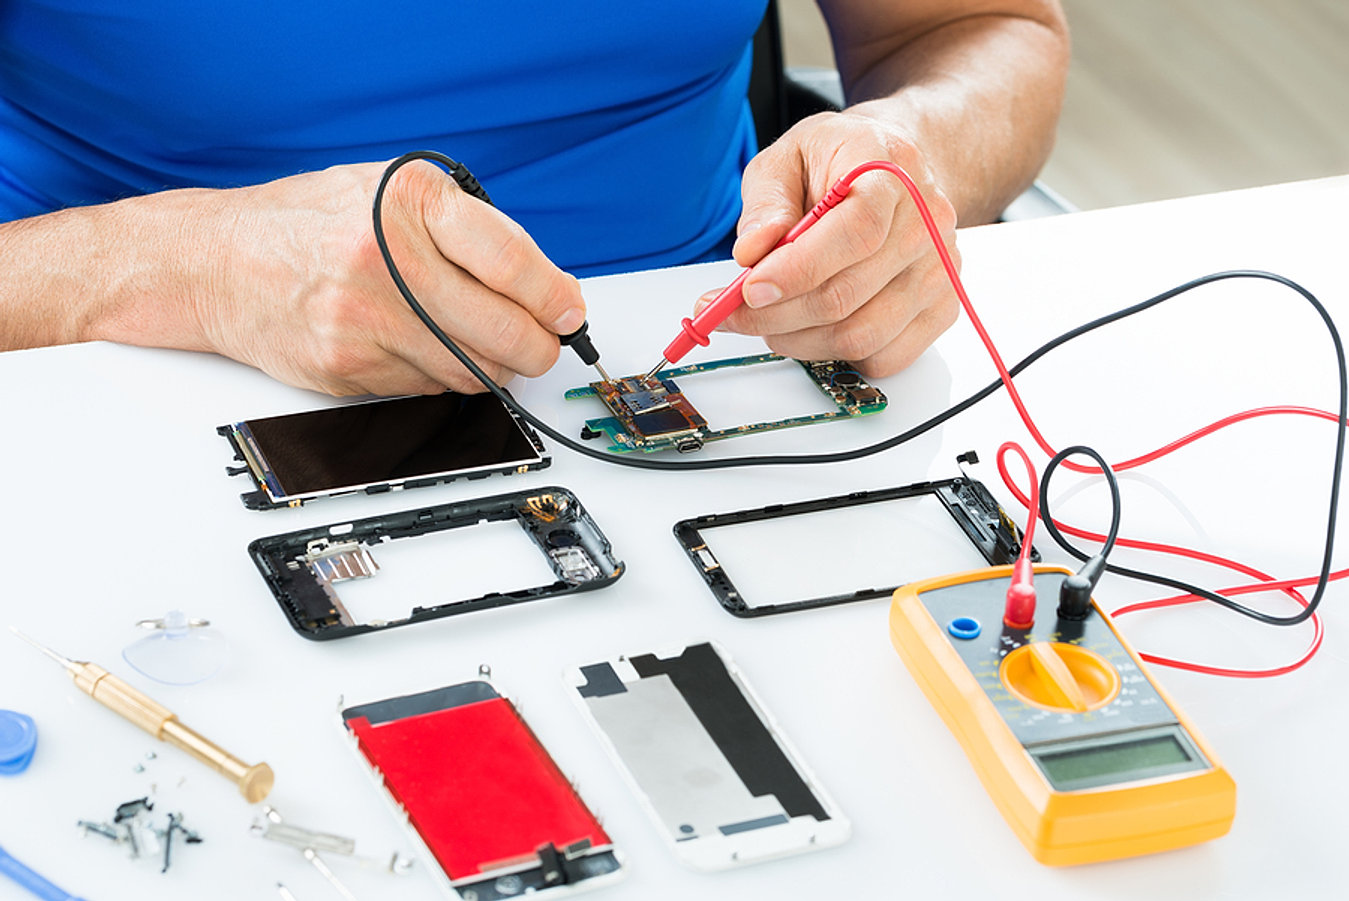 Lsmt Learn Phone Repairs In Just 5 Days London Manchester